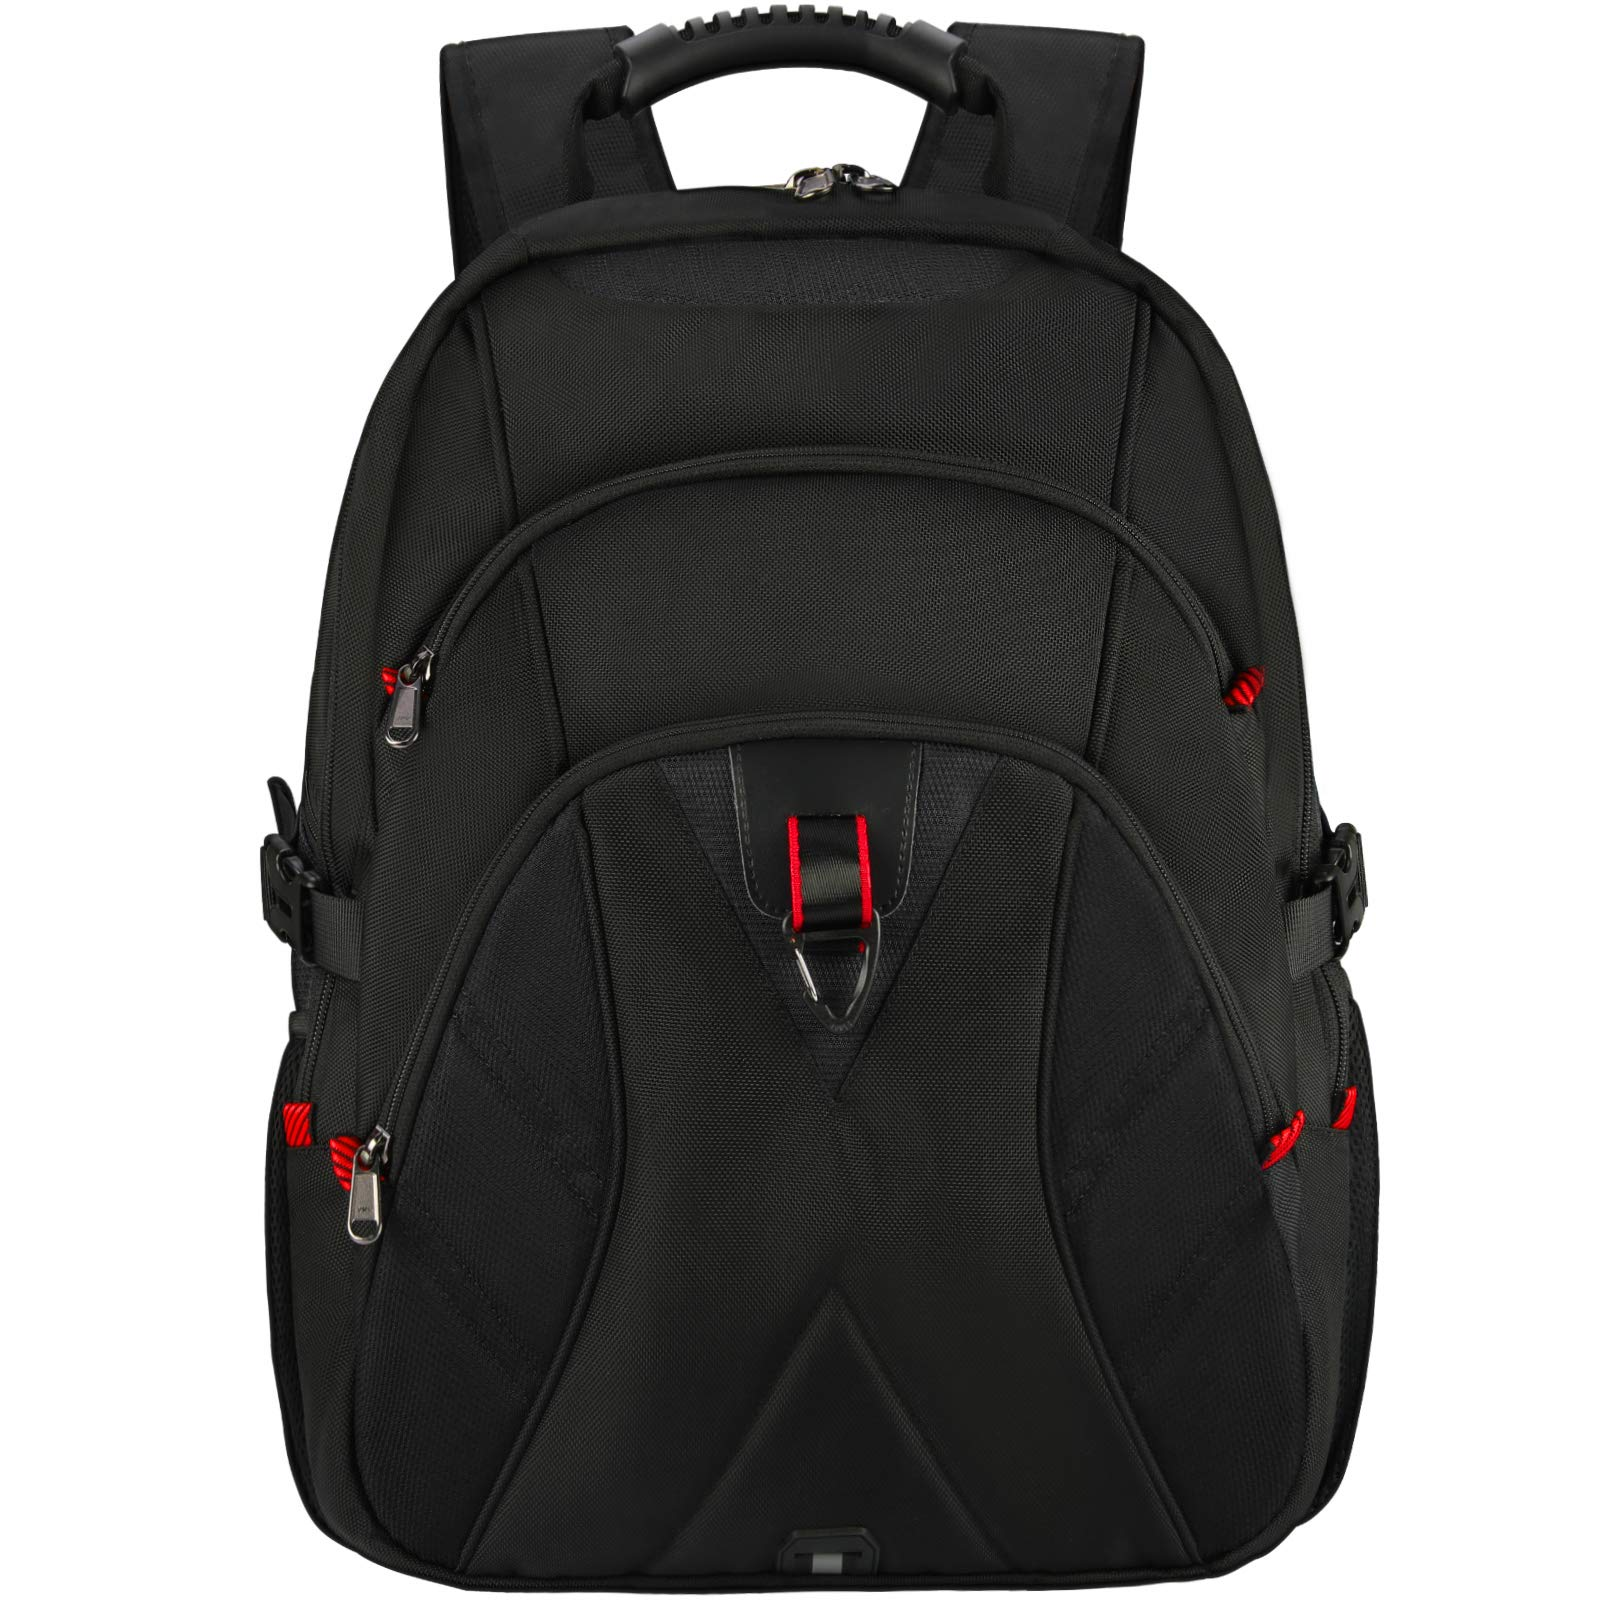 Laptop Backpack 17 Inch Extra Large Travel Backpack for Men Waterproof School College Backpack with USB Charging Port Business Computer Gaming Backpack for Women Men Black